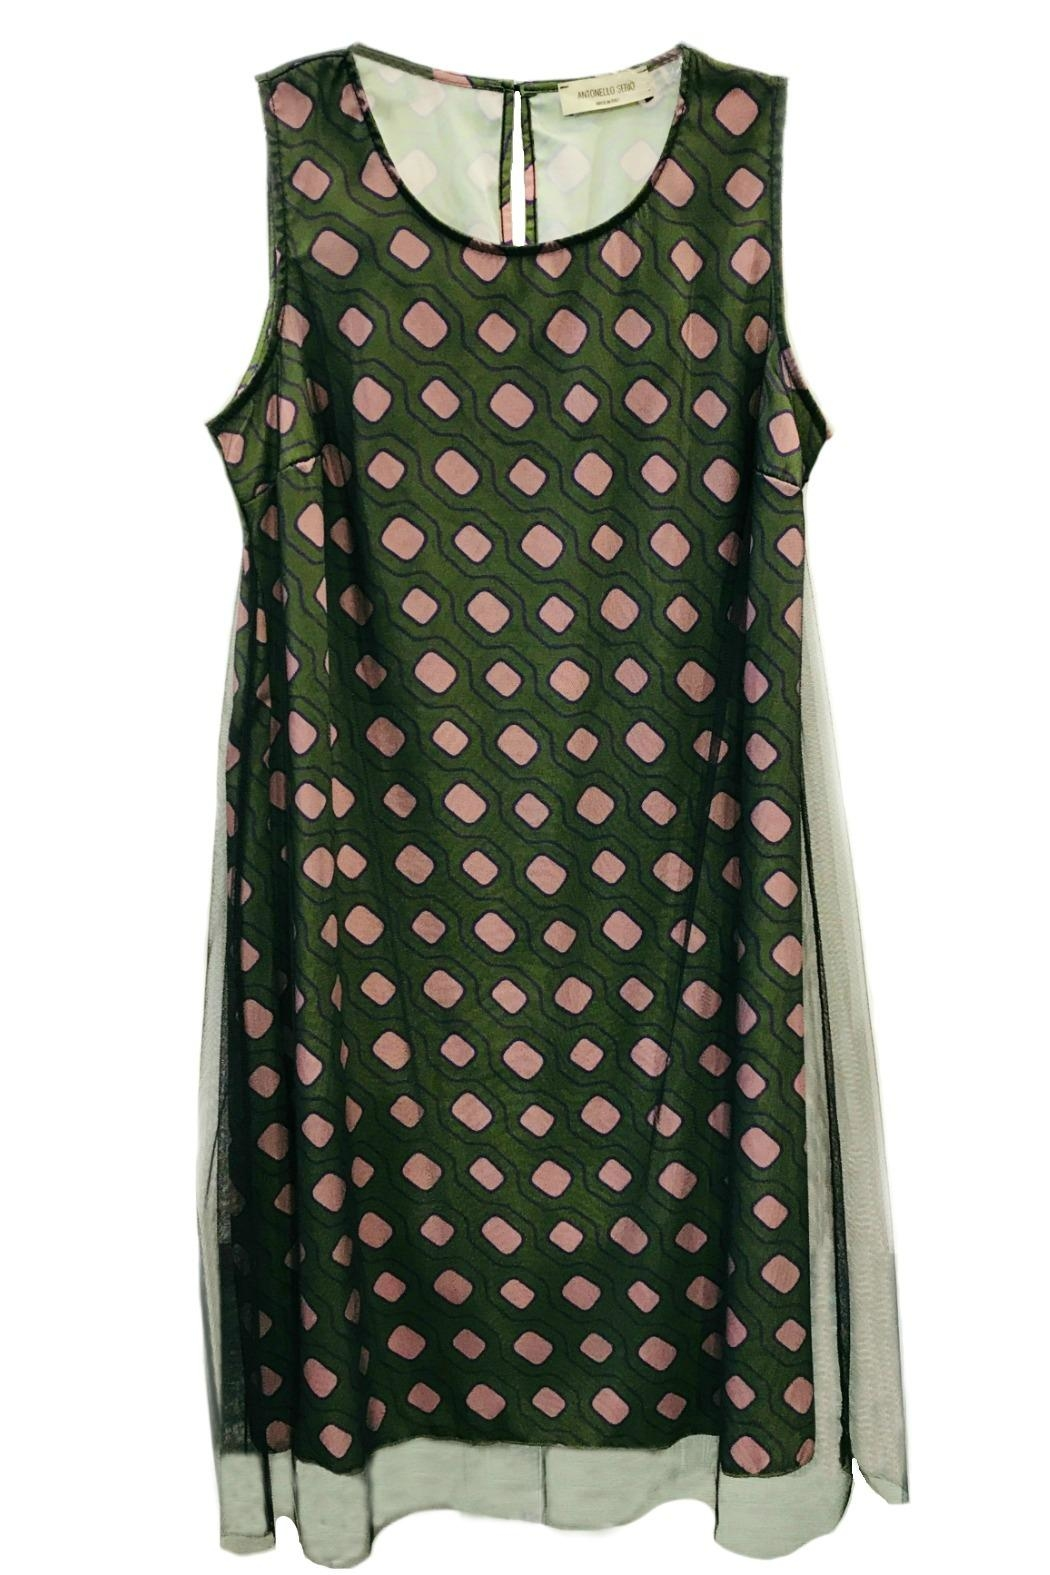 ANTONELLO SERIO Green Graphic Dress - Main Image